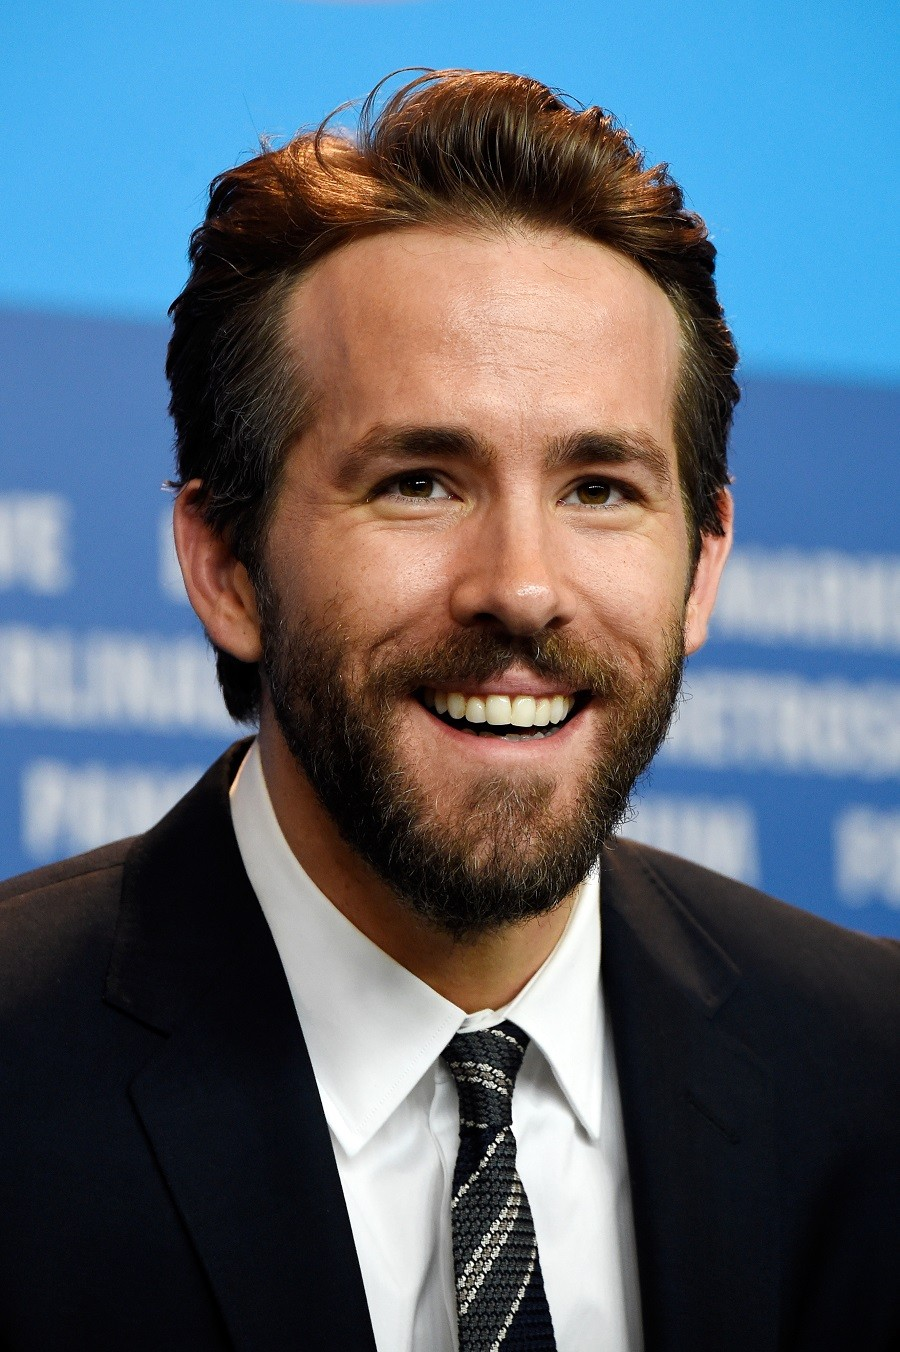 Ryan Reynolds attends the 'Woman in Gold' press conference